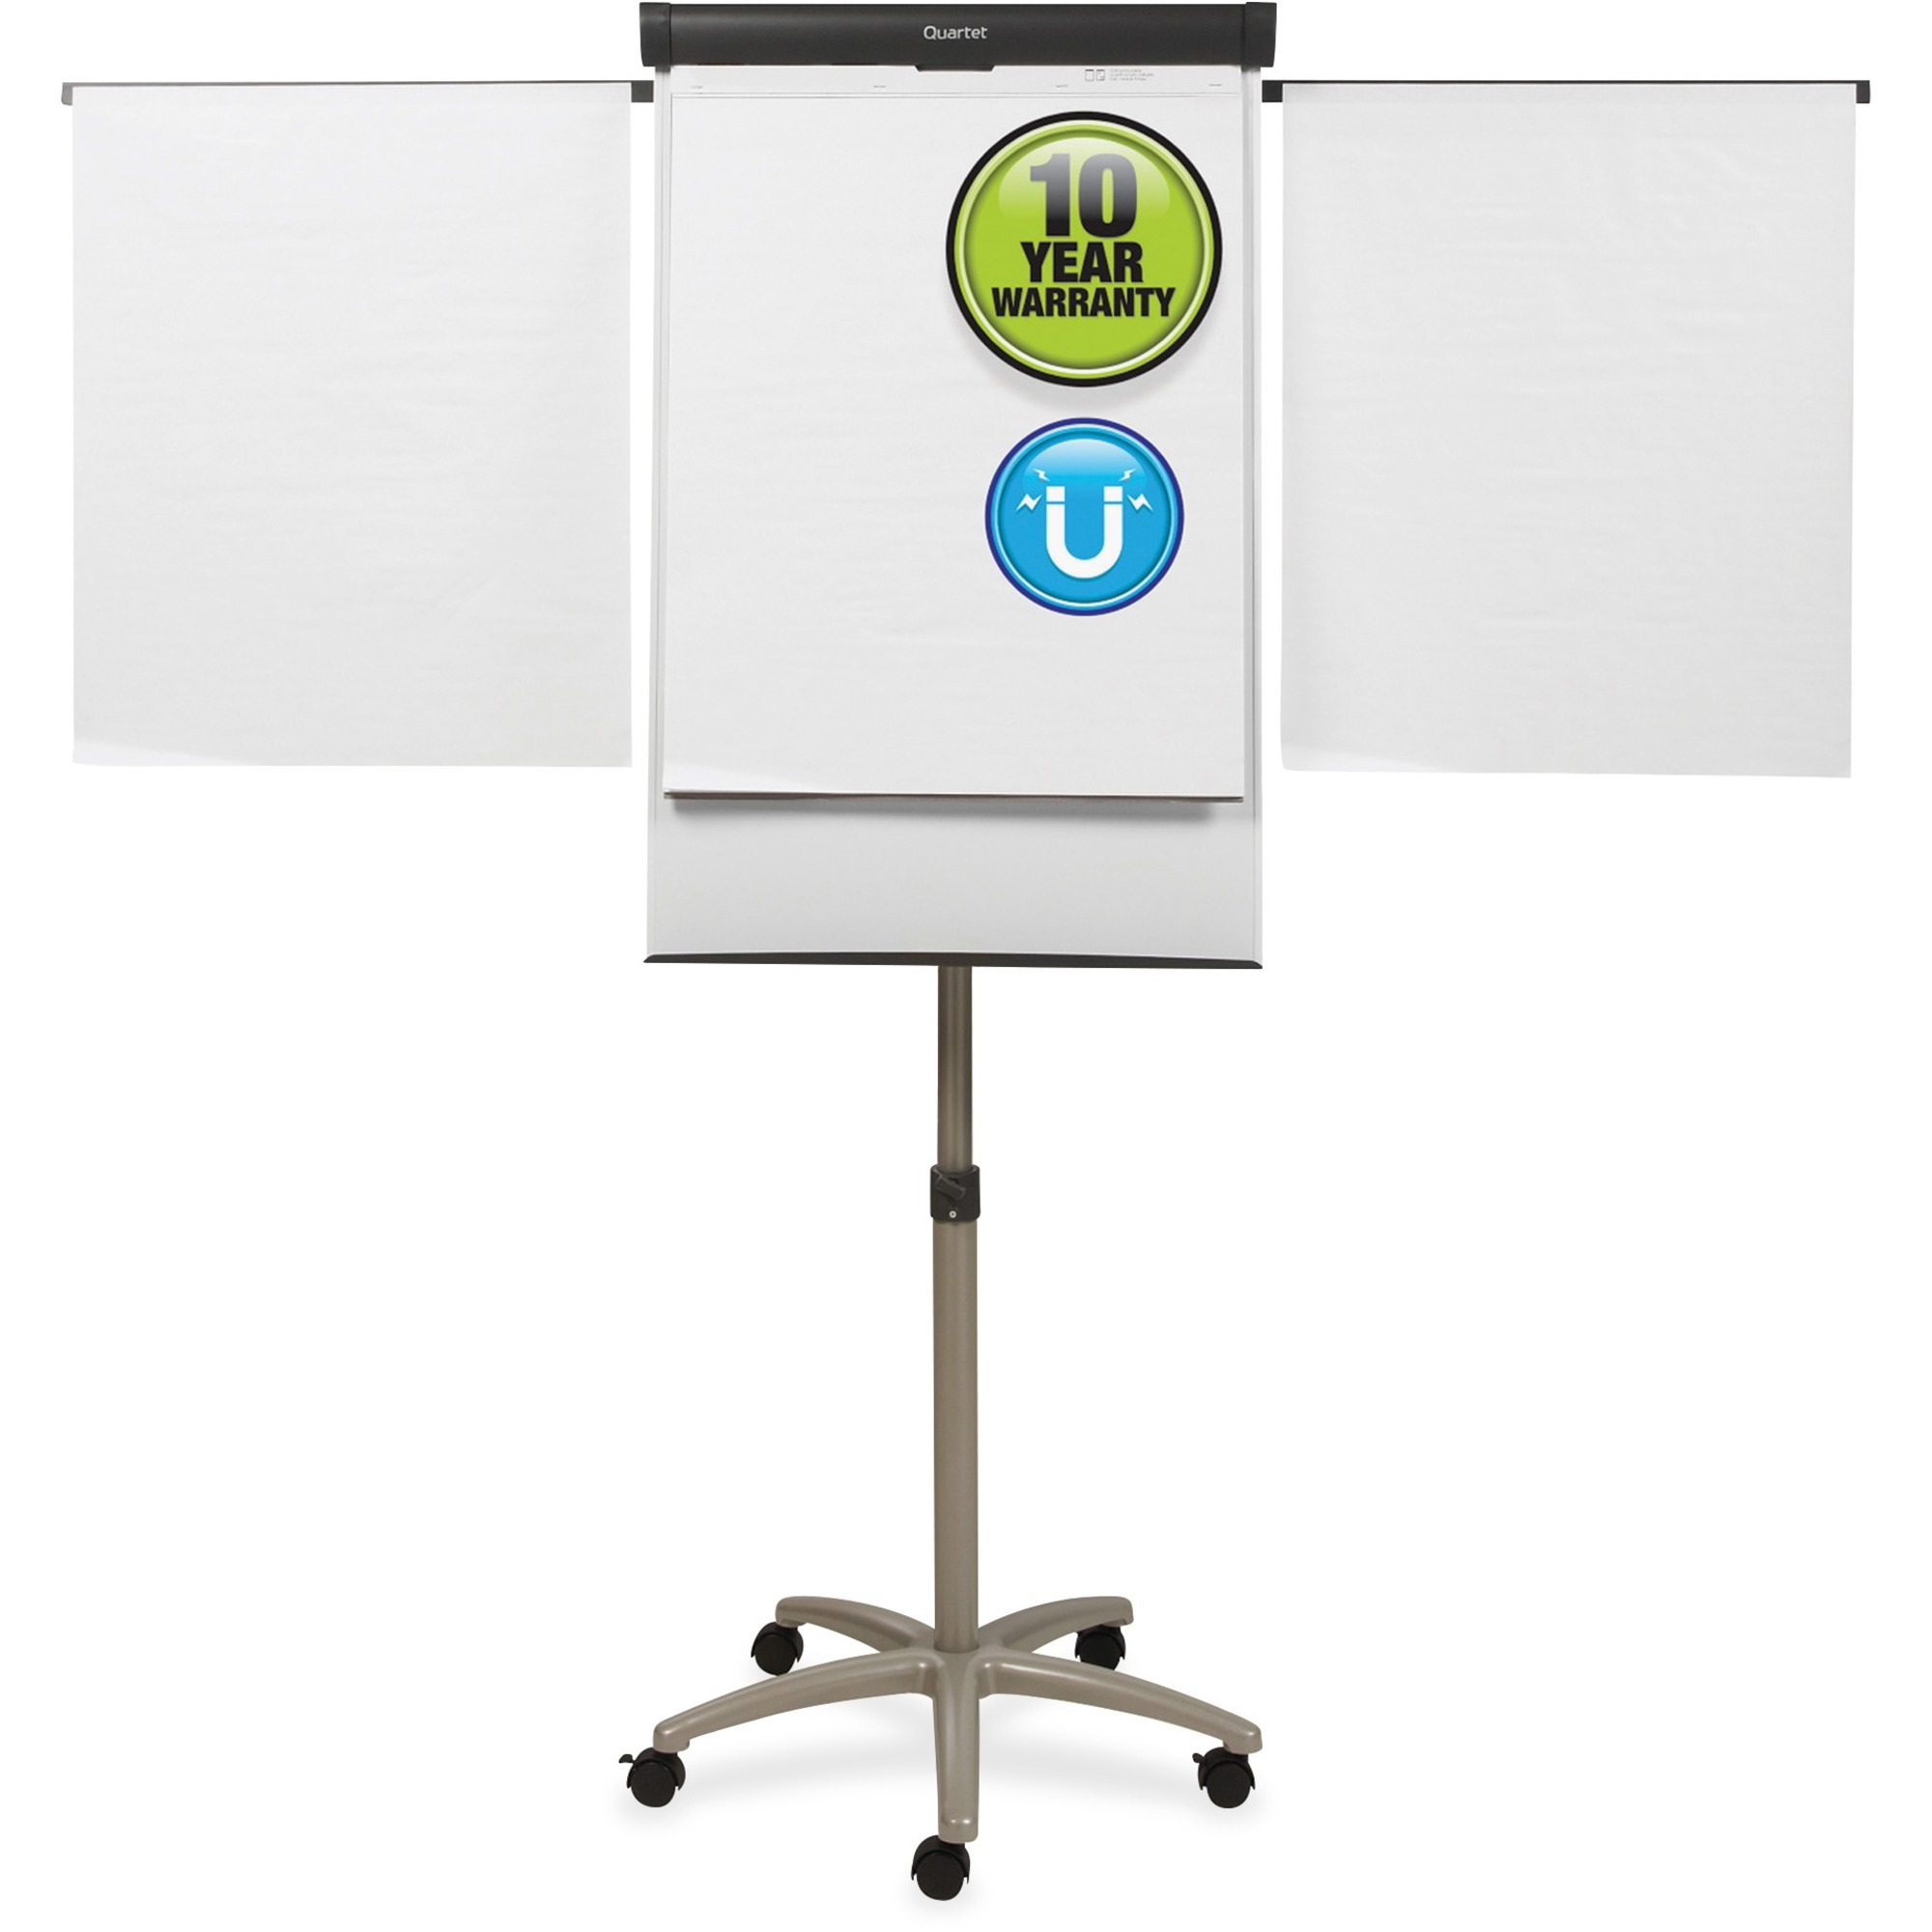 Acco Brands Corporation Quartet® Compass Mobile Presentation Easel, Magnetic Whiteboared/flipchart, 3 X 2, Graphite Finish Frame - 36 (3 Ft) Width X 24 (2 Ft) Height - White Painted Steel Surface - Graphite Aluminum Frame - Horizontal - 1 Each